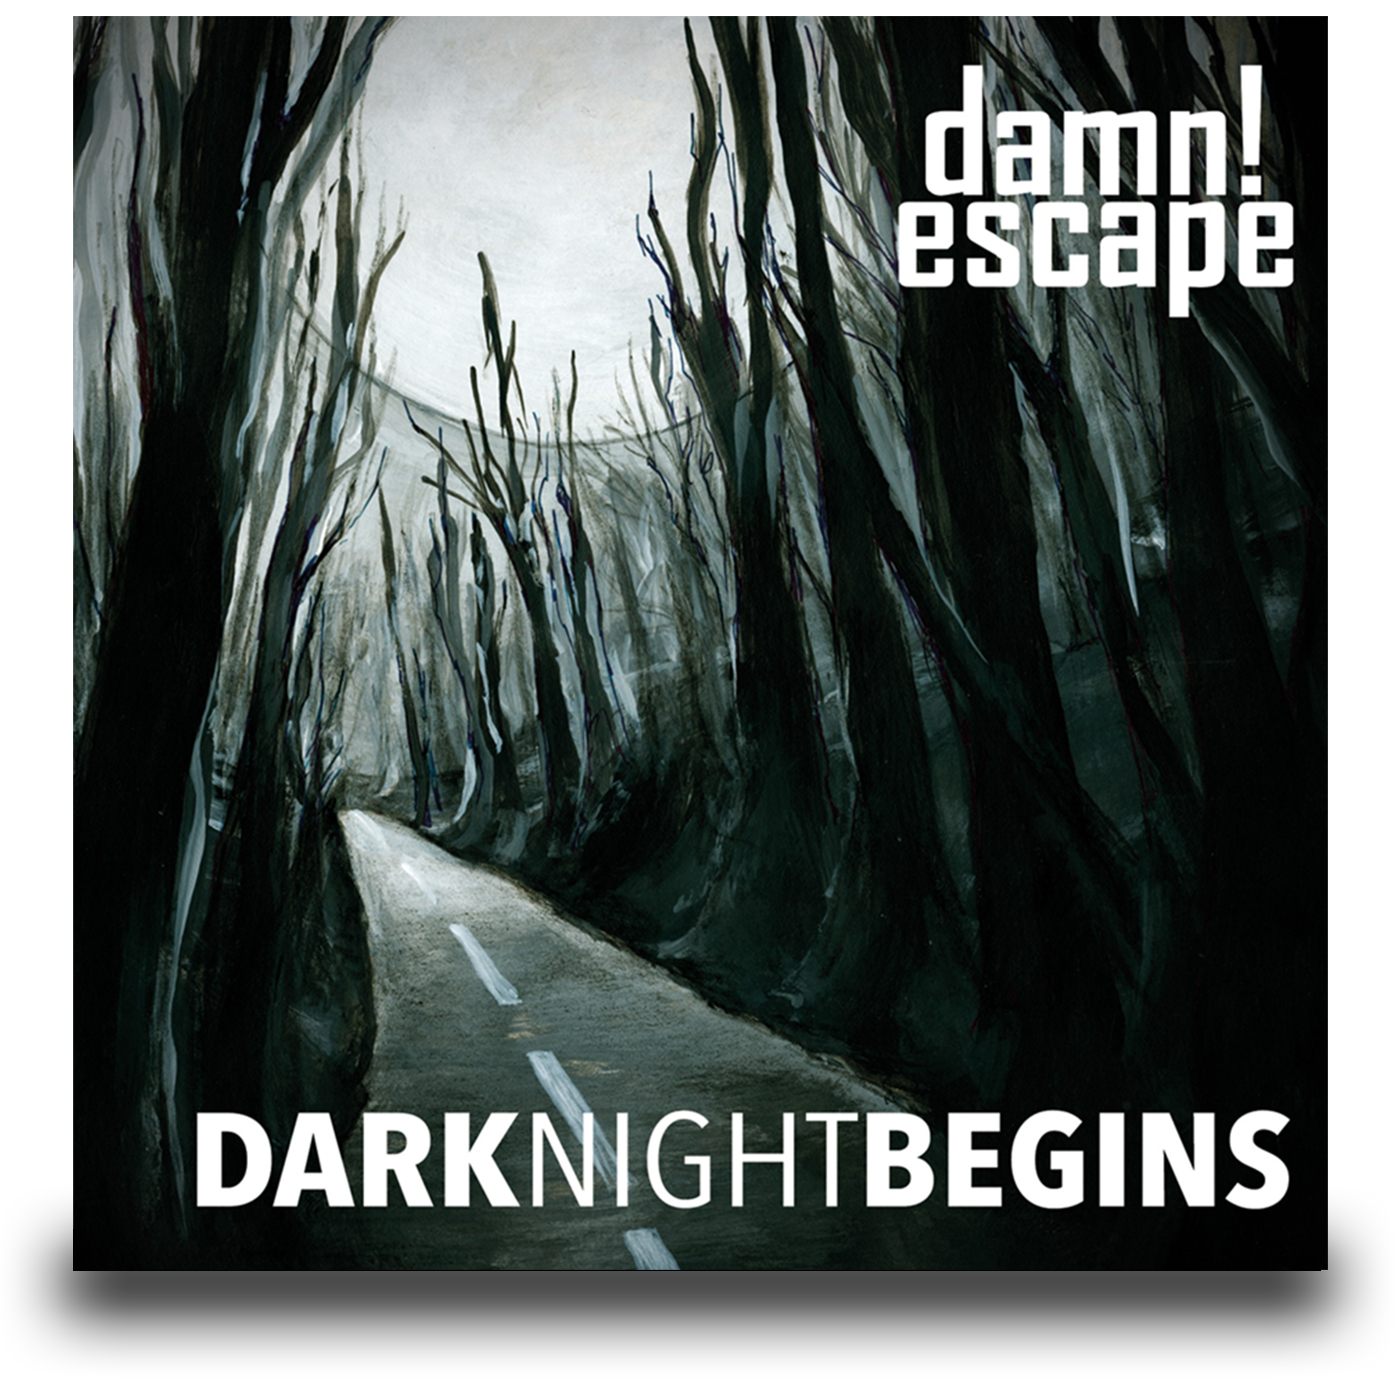 DarkNightBegins